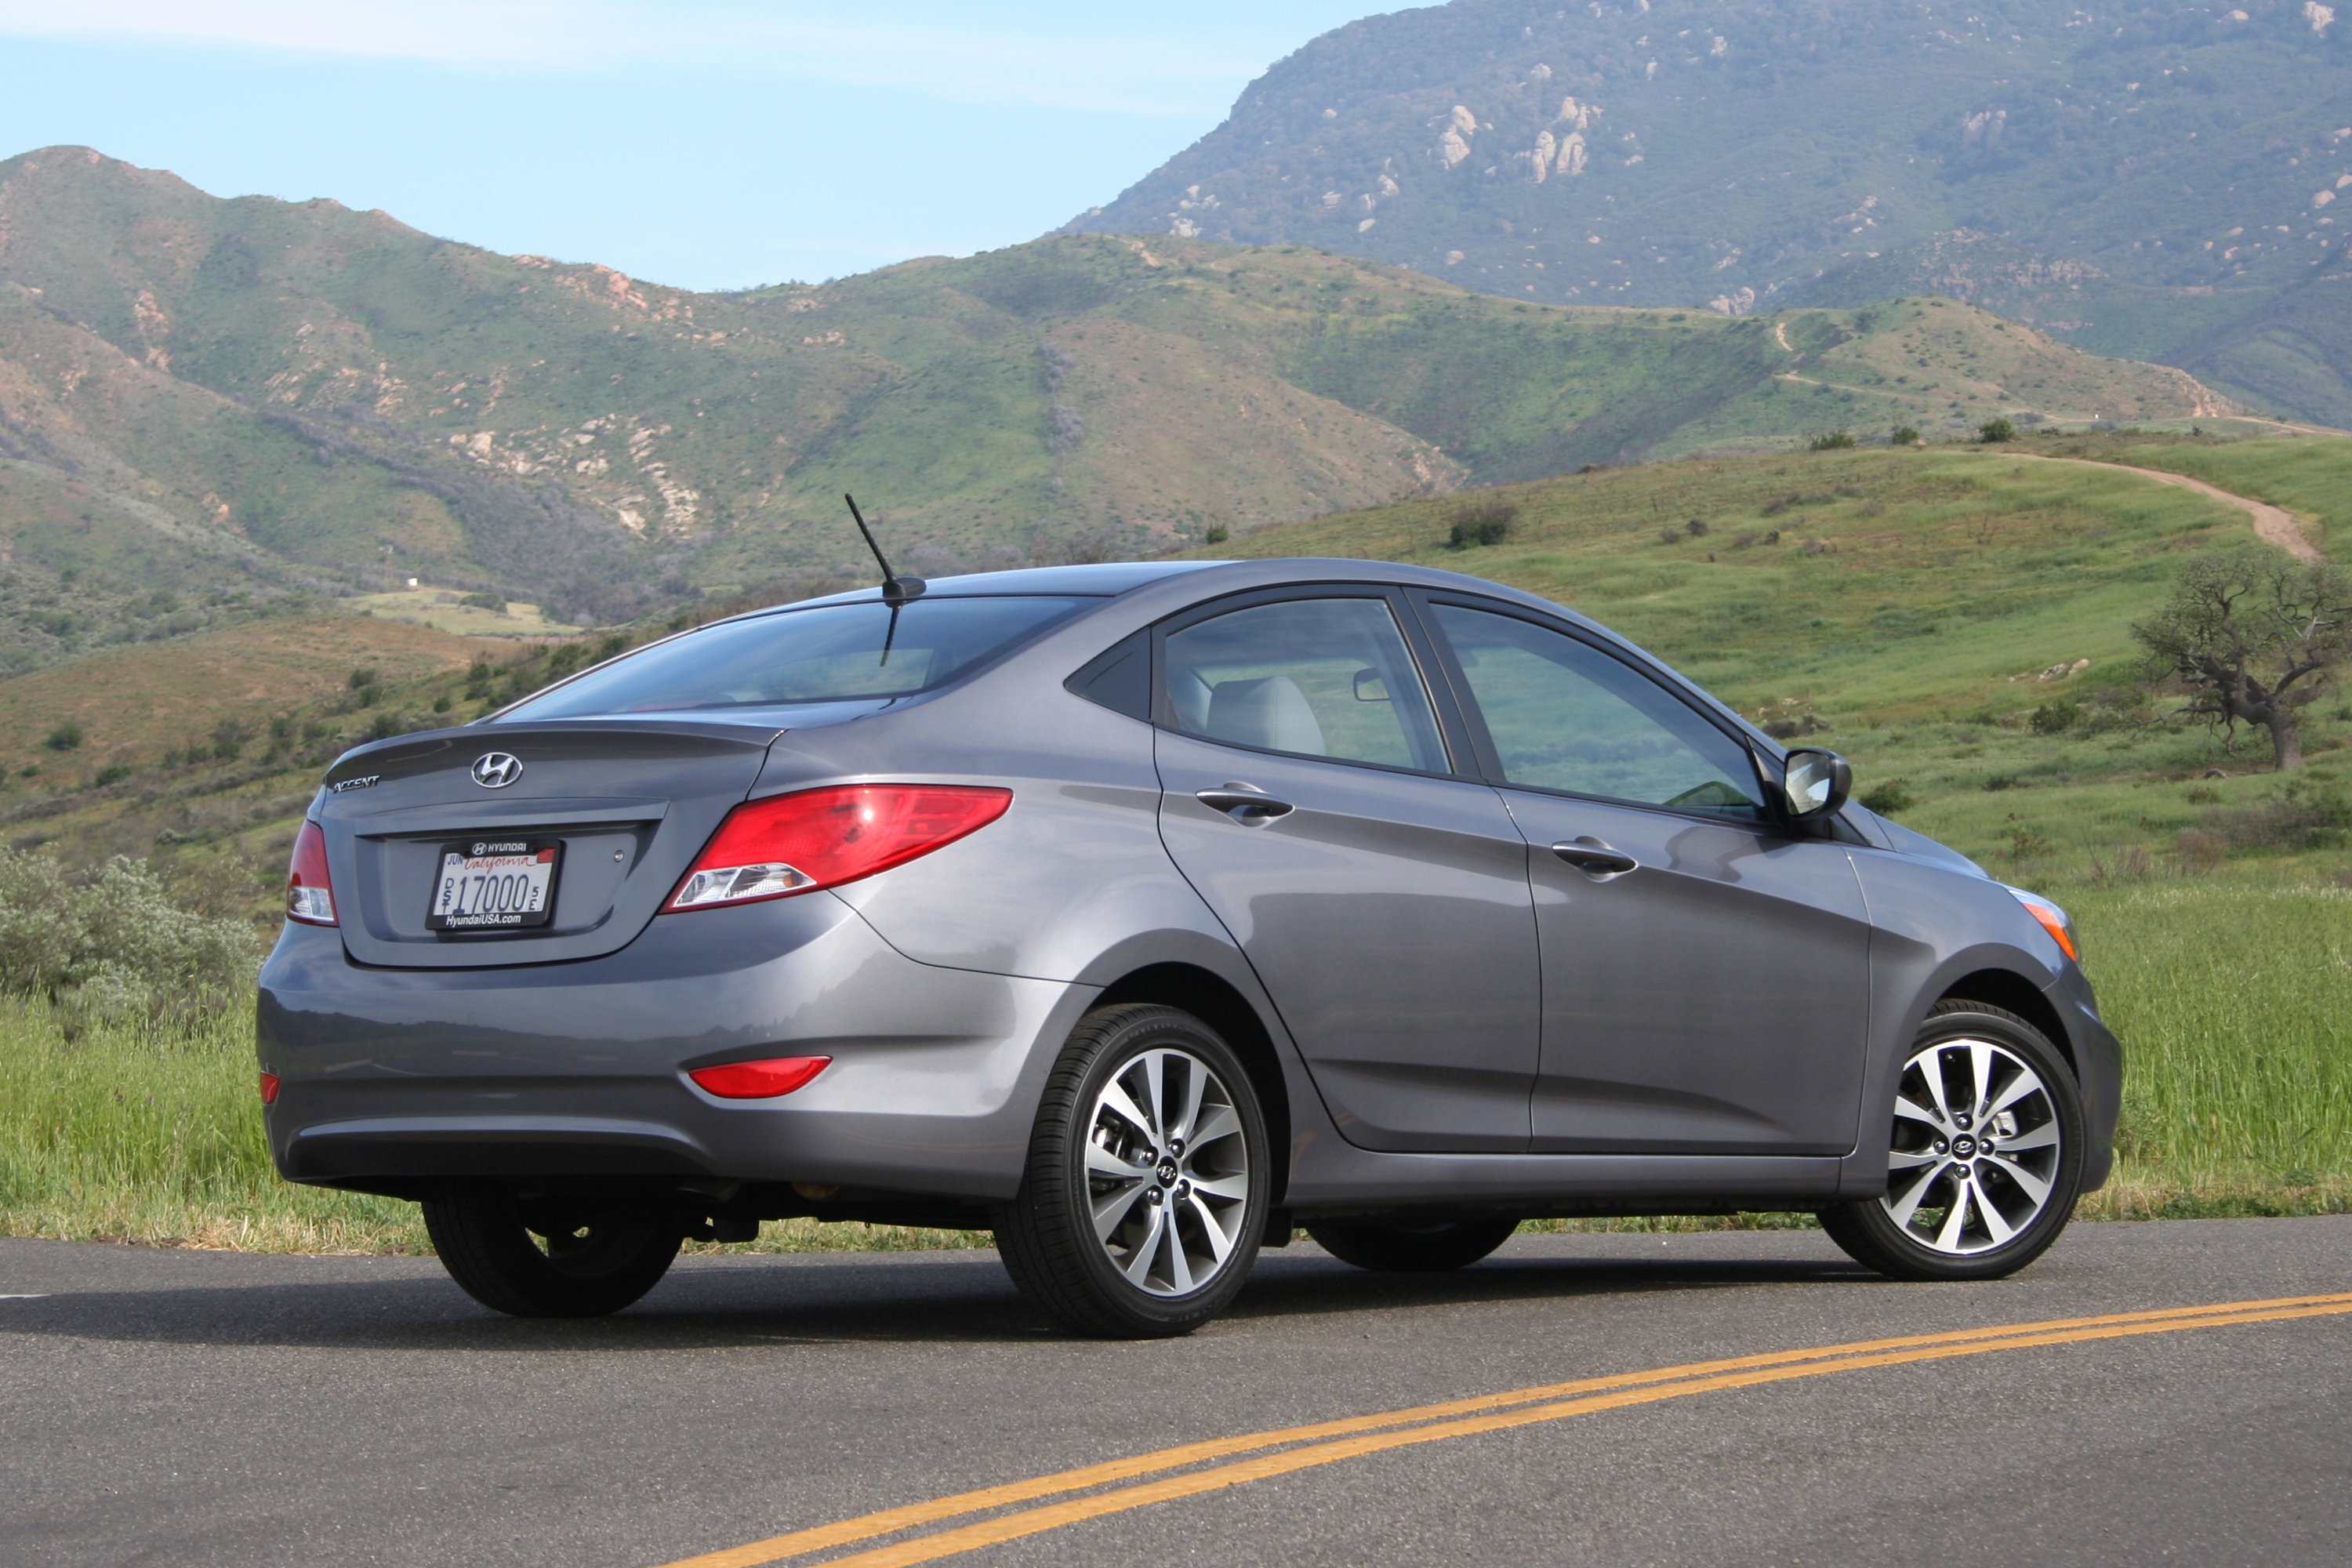 2015 Hyundai Accent Review - AutoGuide.com News